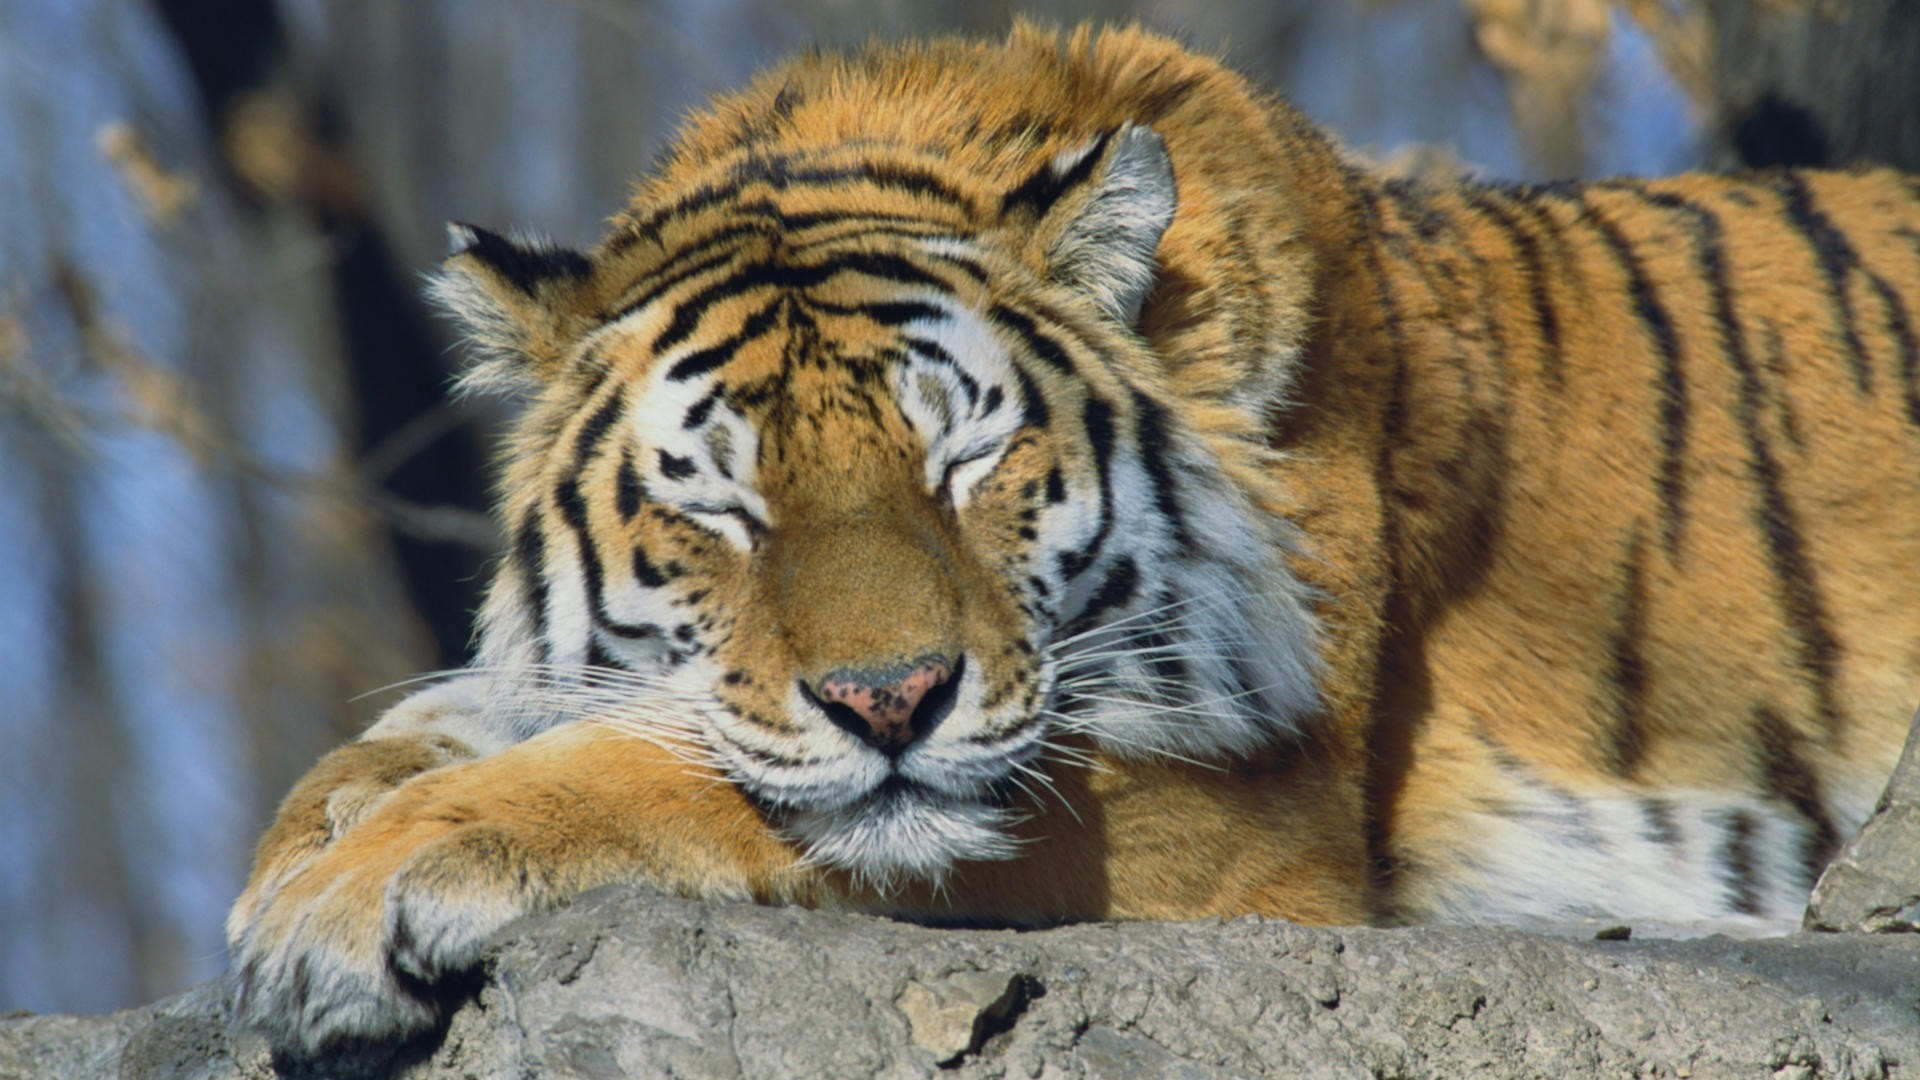 Russia siberian tiger animals sleeping tigers wallpaper ...